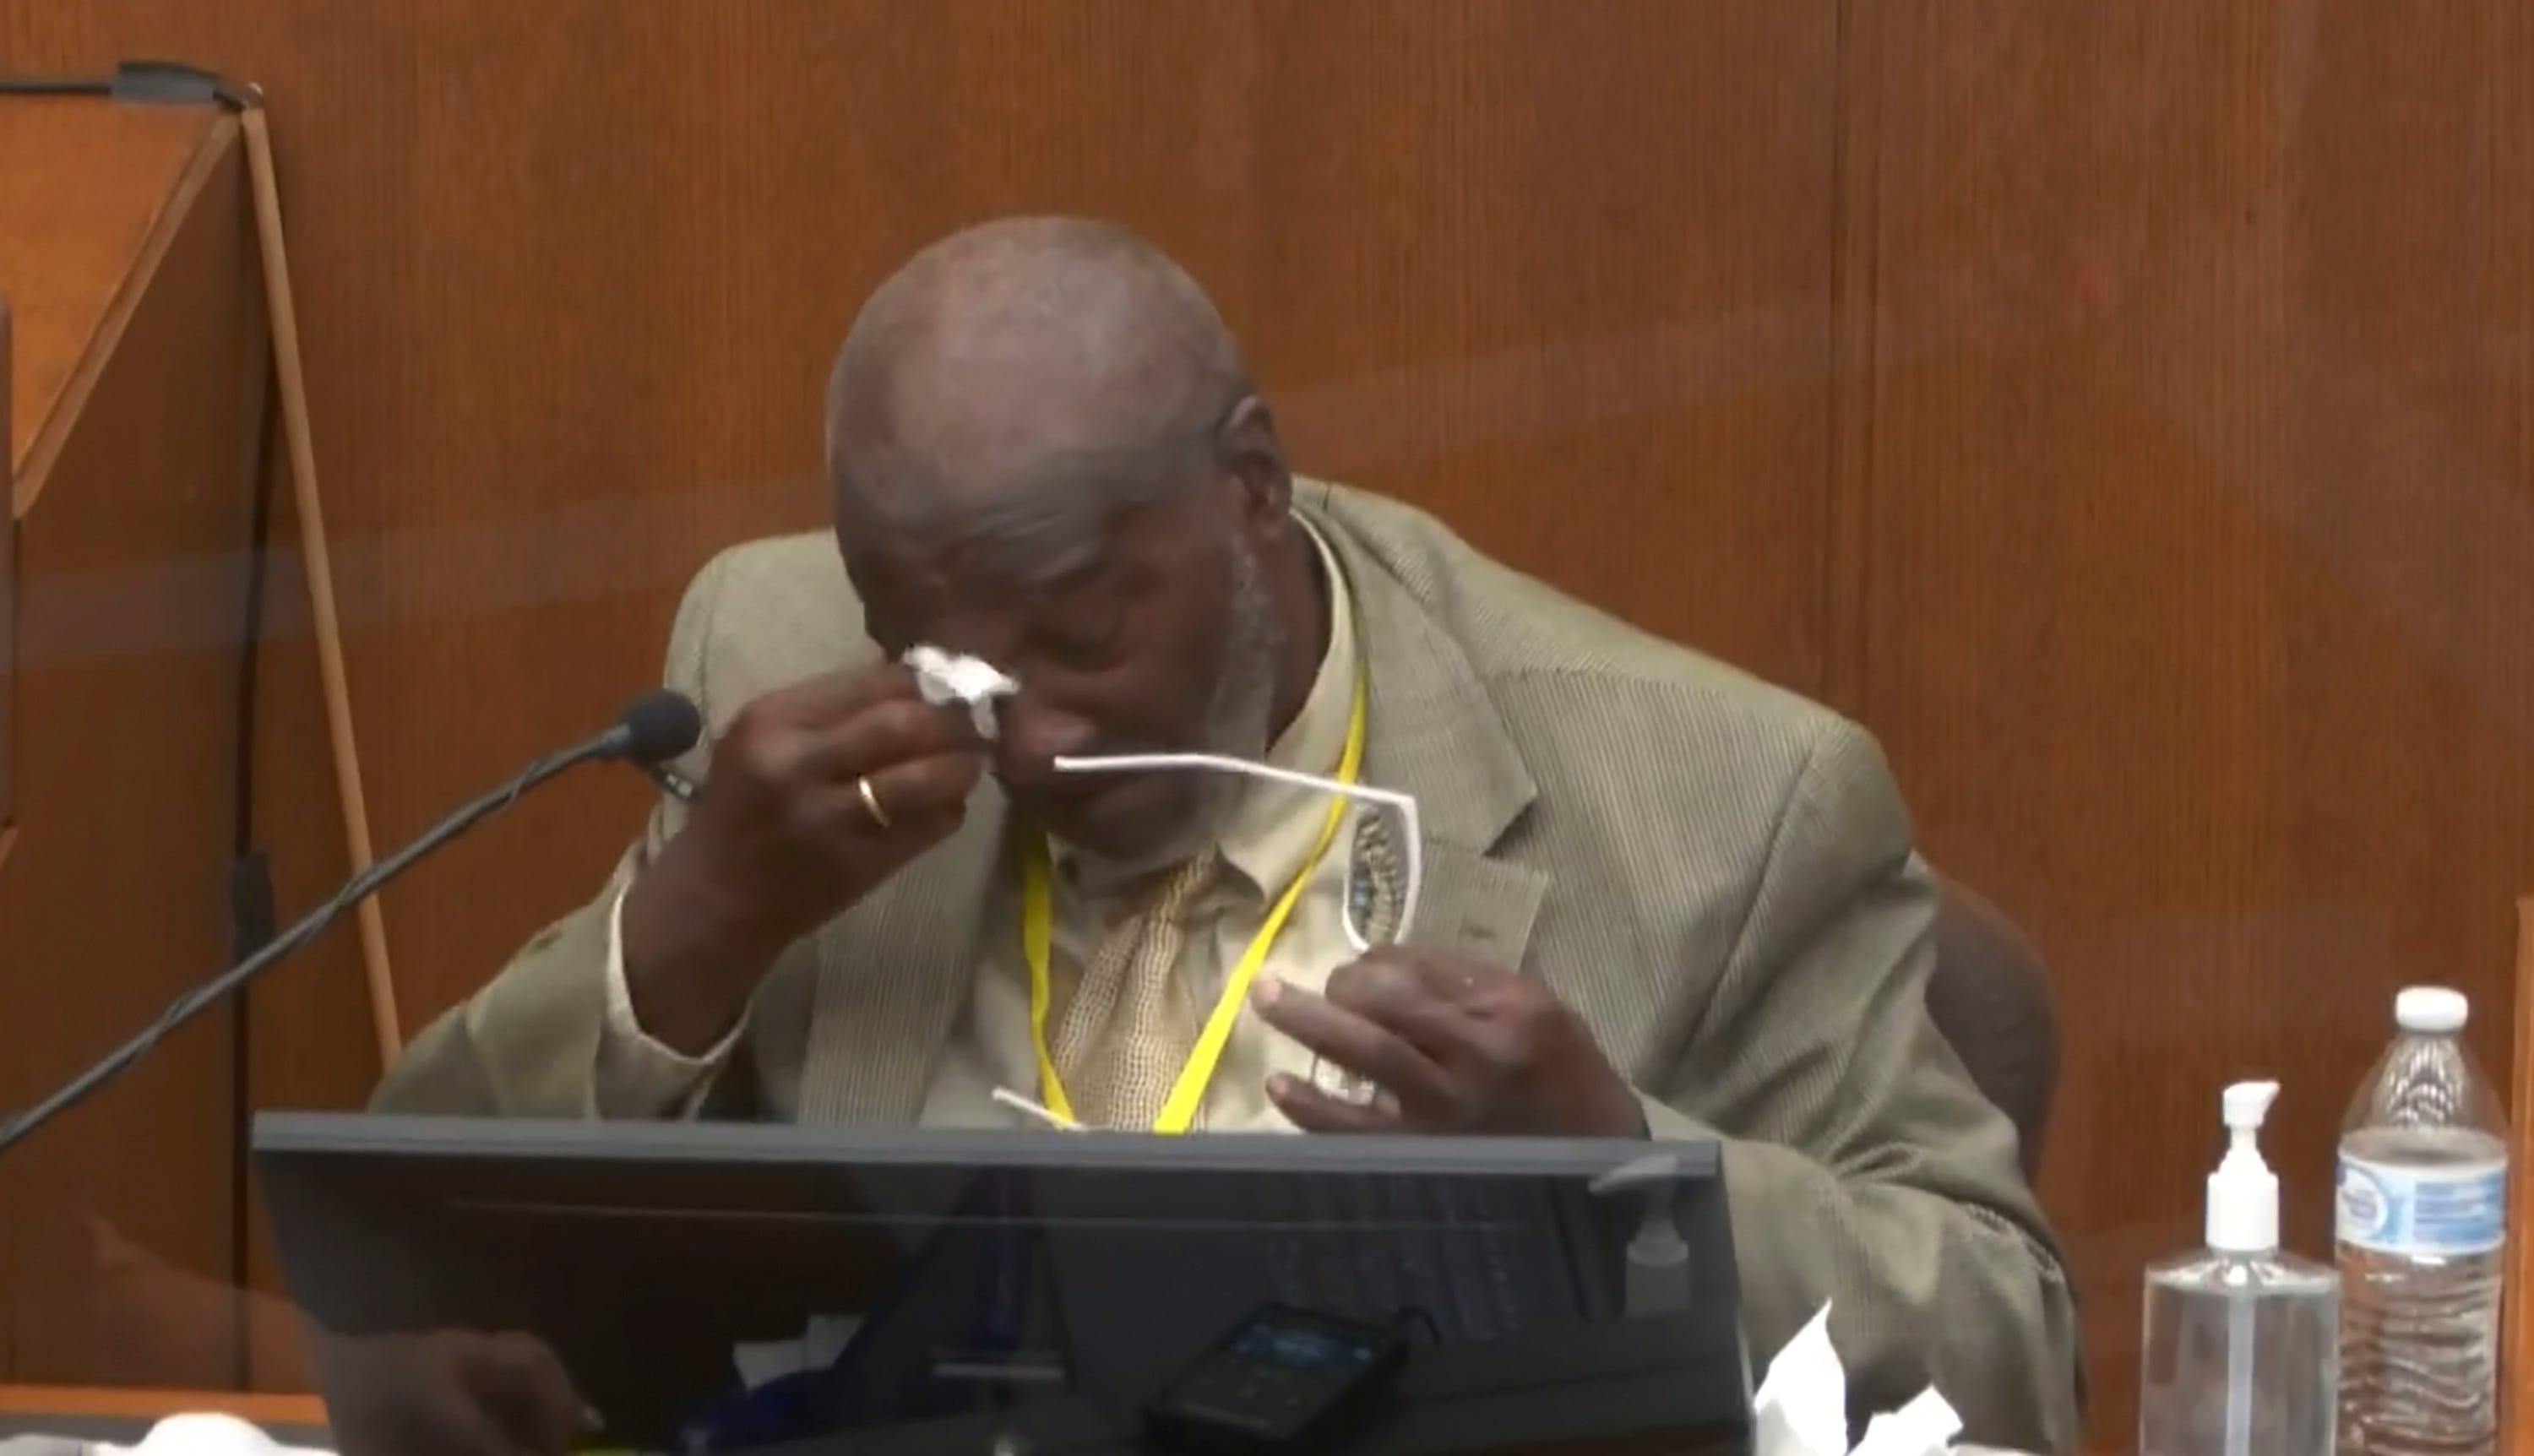 Witness Charles McMillian becomes emotional as he answers questions March 31 in the trial of former Minneapolis police officer Derek Chauvin at the Hennepin County Courthouse in Minneapolis.